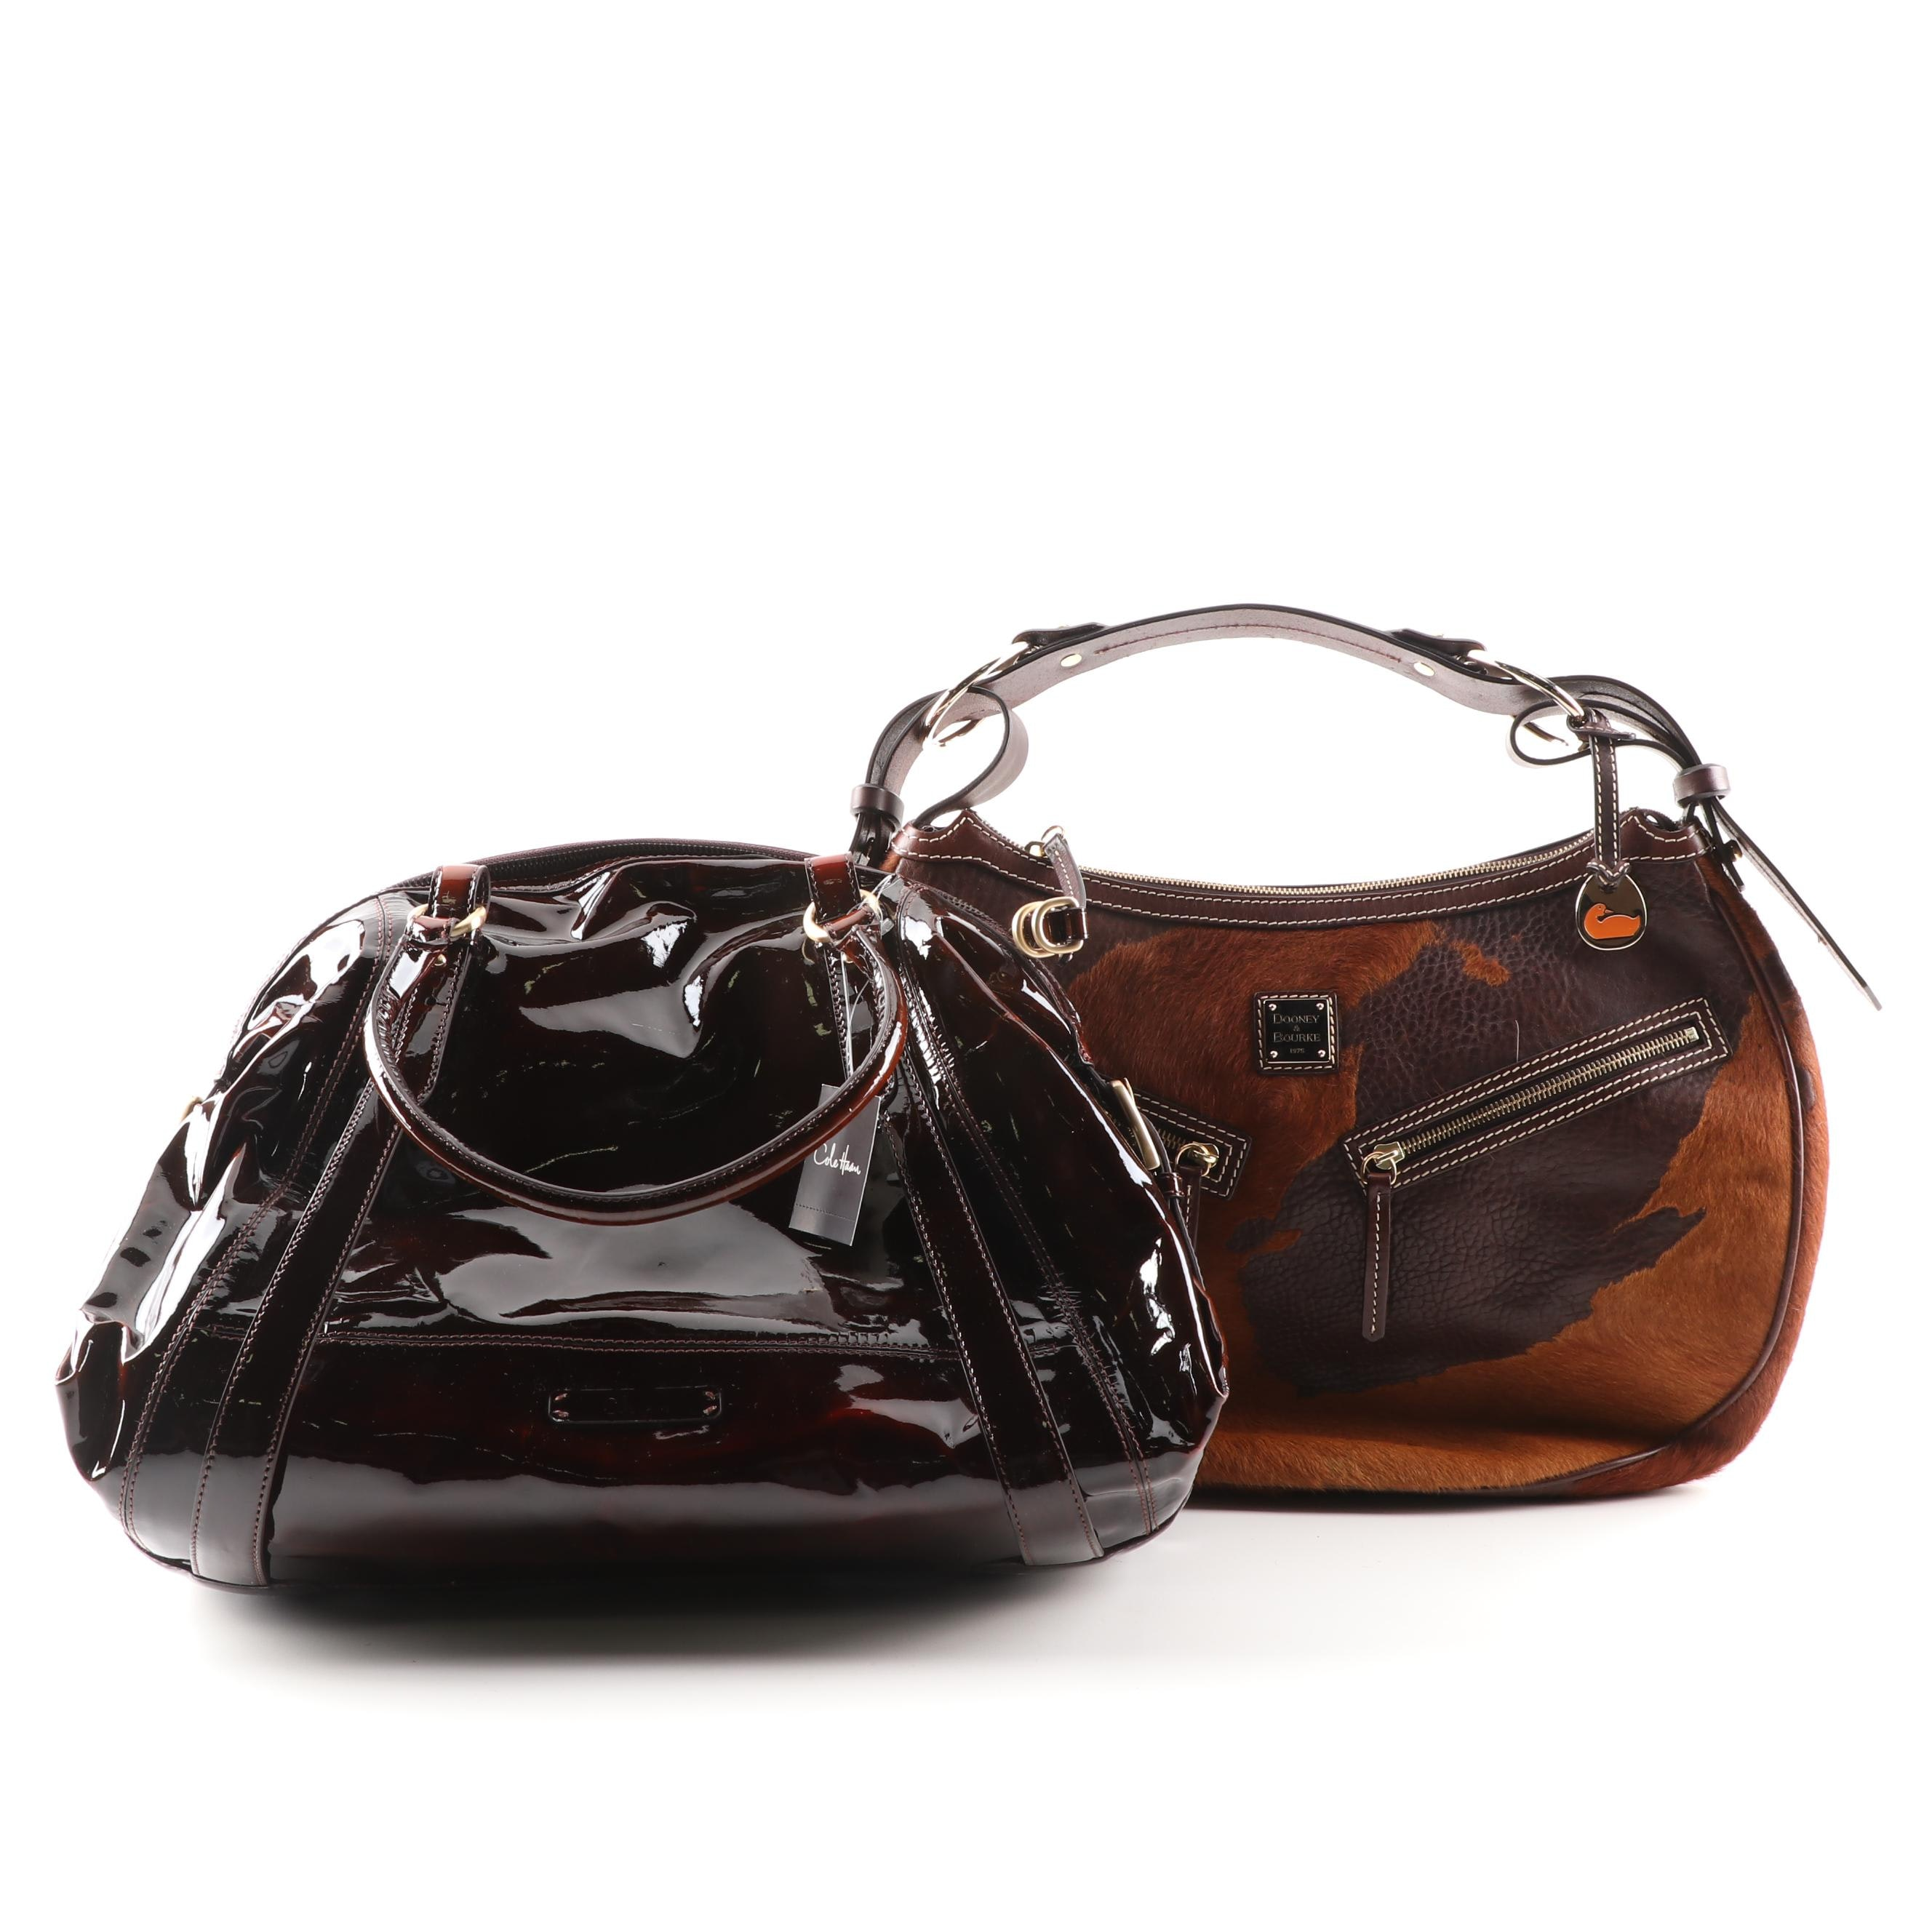 Dooney & Bourke Cowhide Leather and Cole Haan Patent Leather Handbags